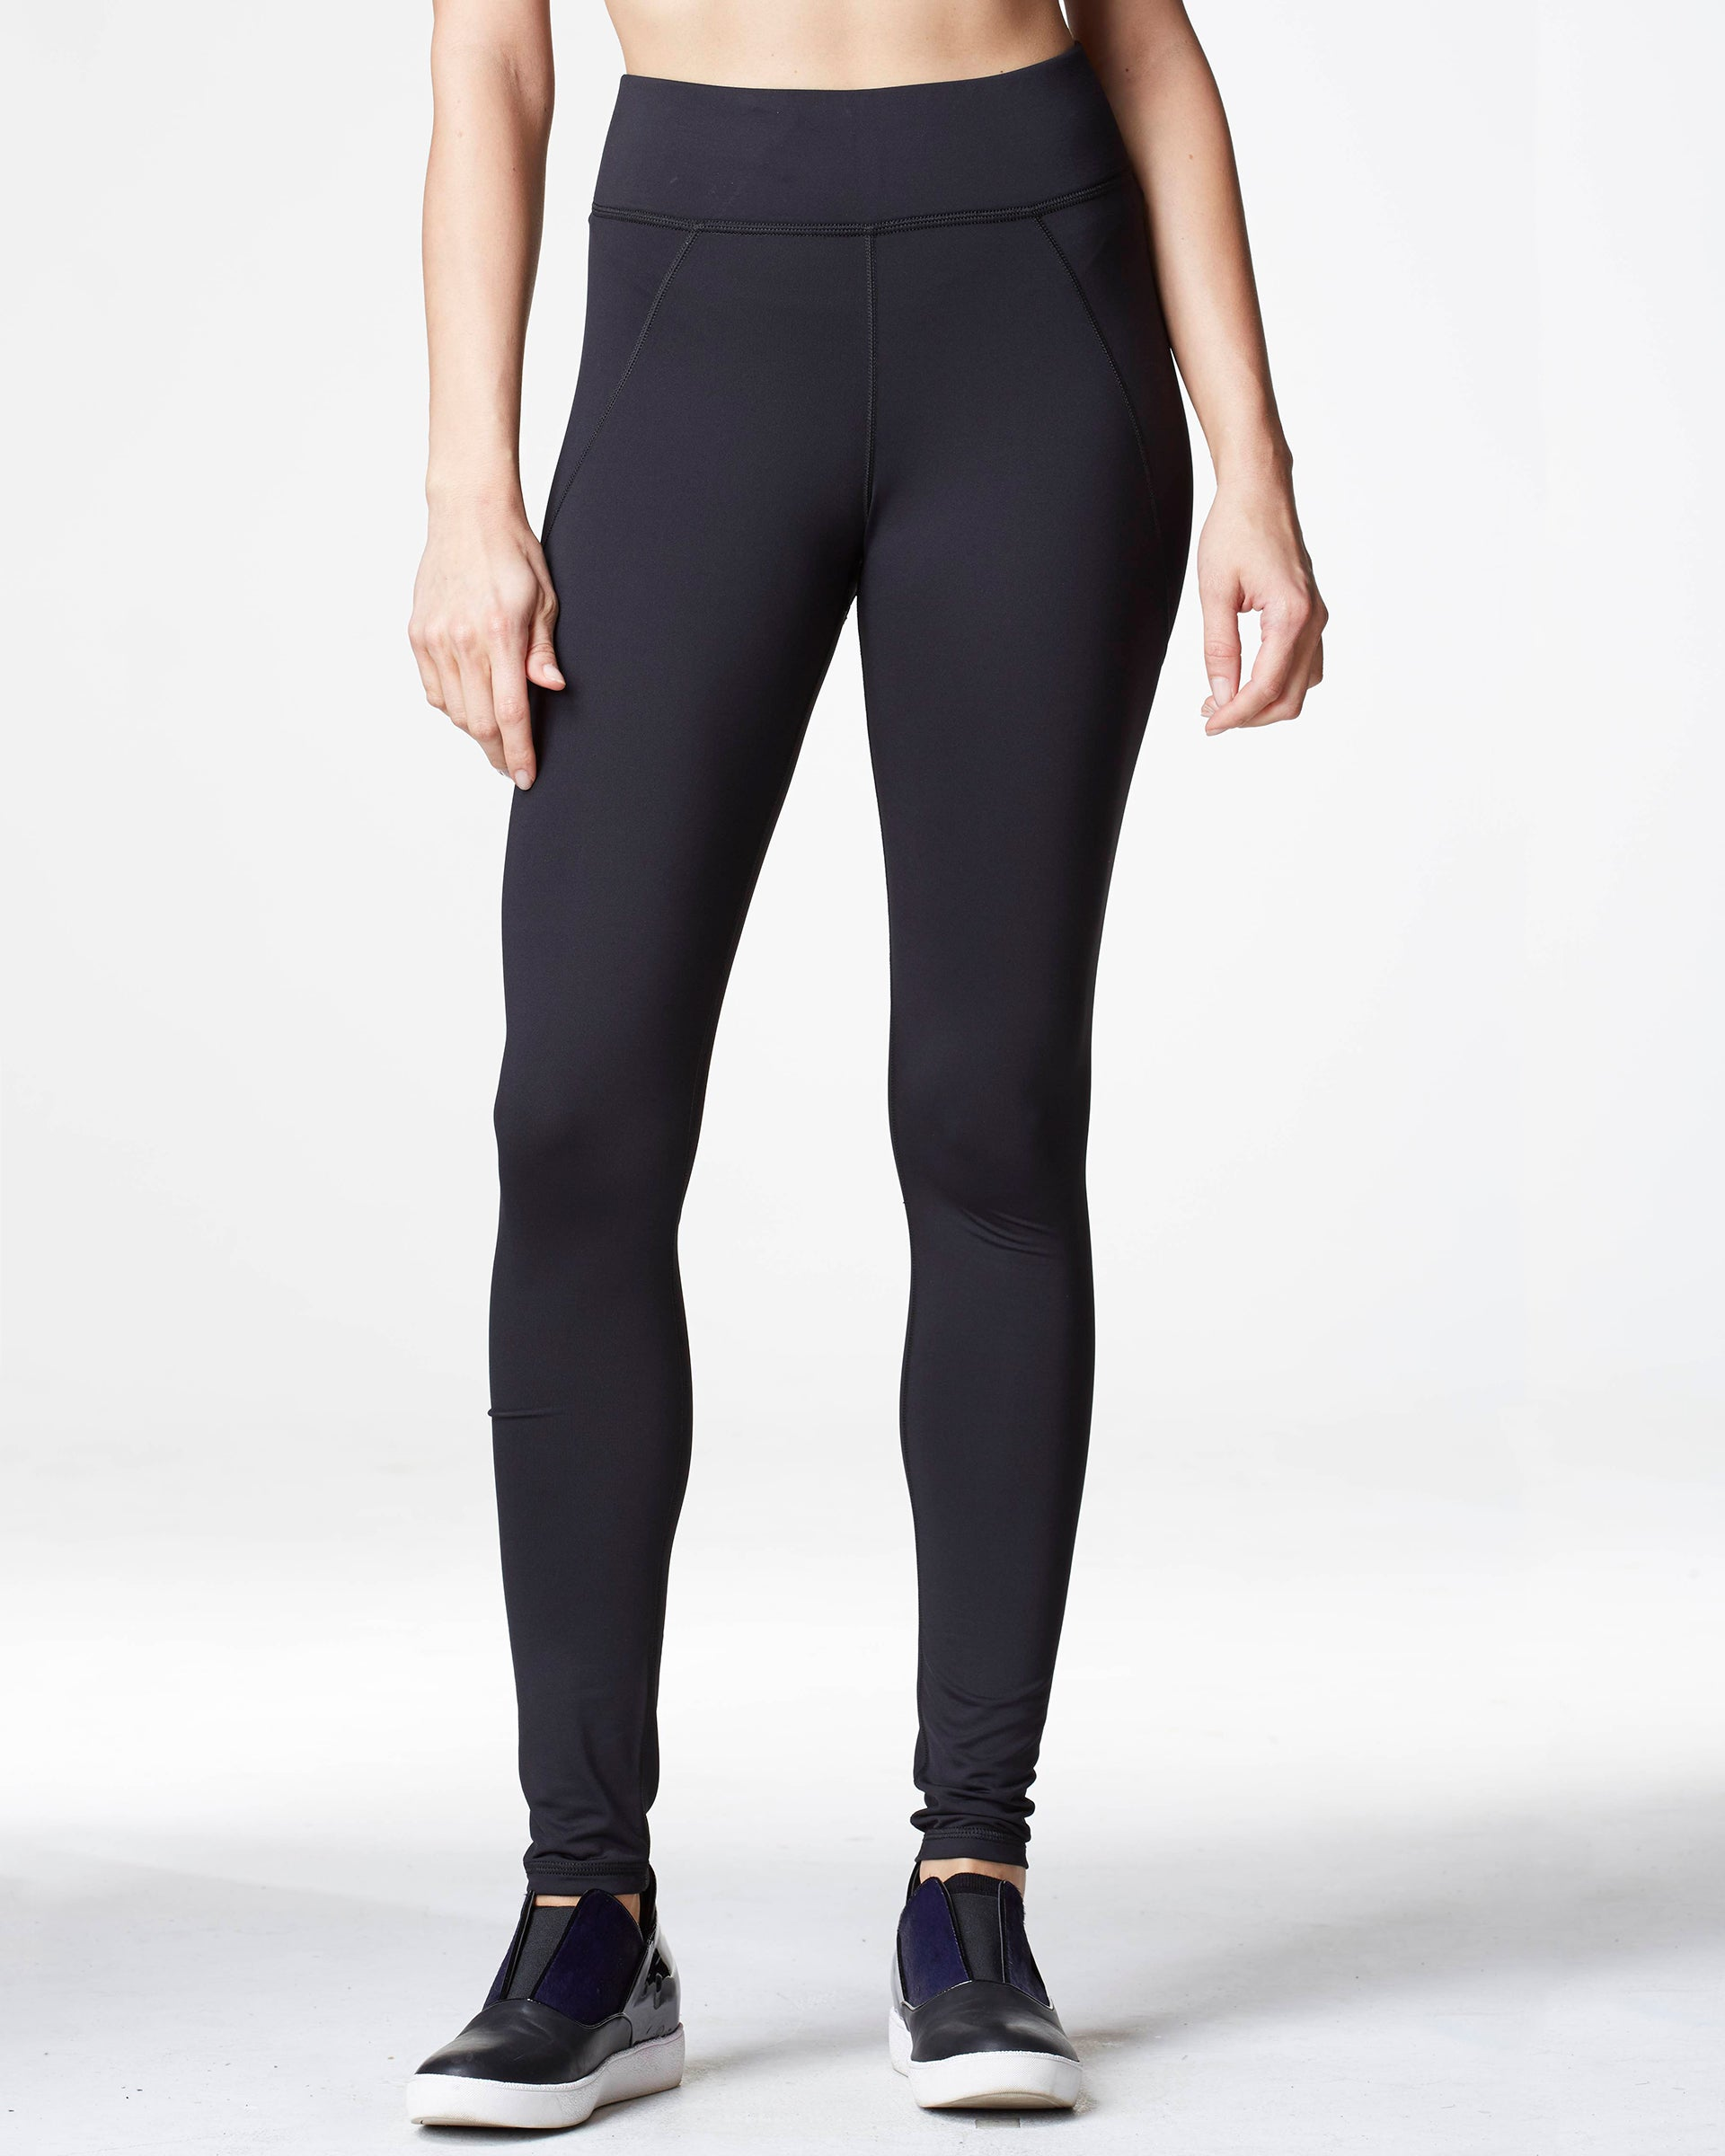 reflective-revue-legging-black